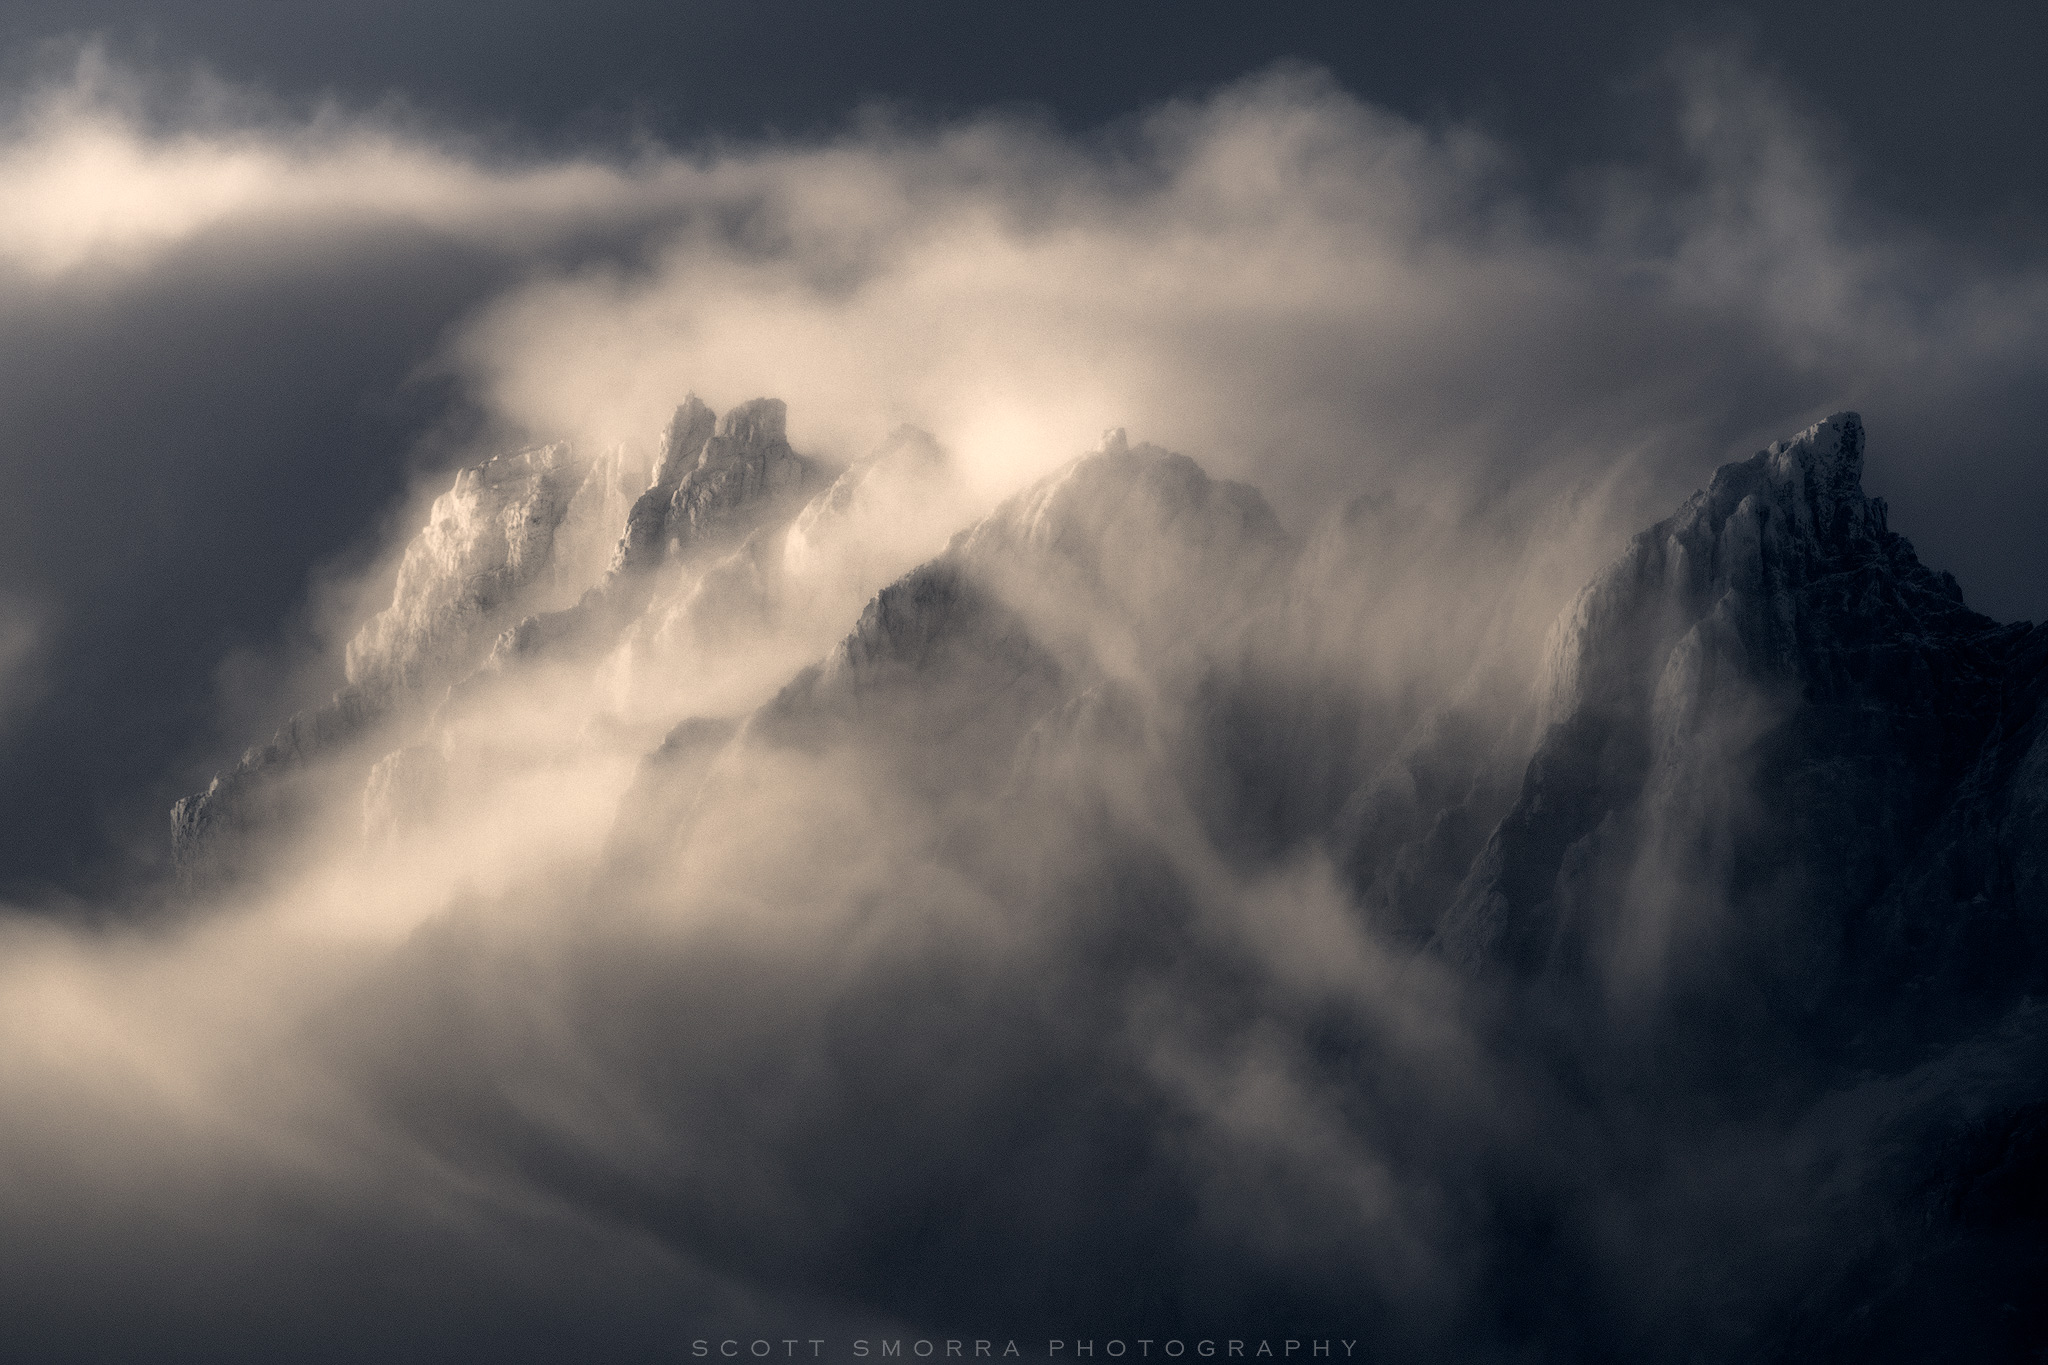 Patagonia, Chile, Parque Nacional Torres del Paine, Grande clouds, summit, atmosphere, telephoto,, photo